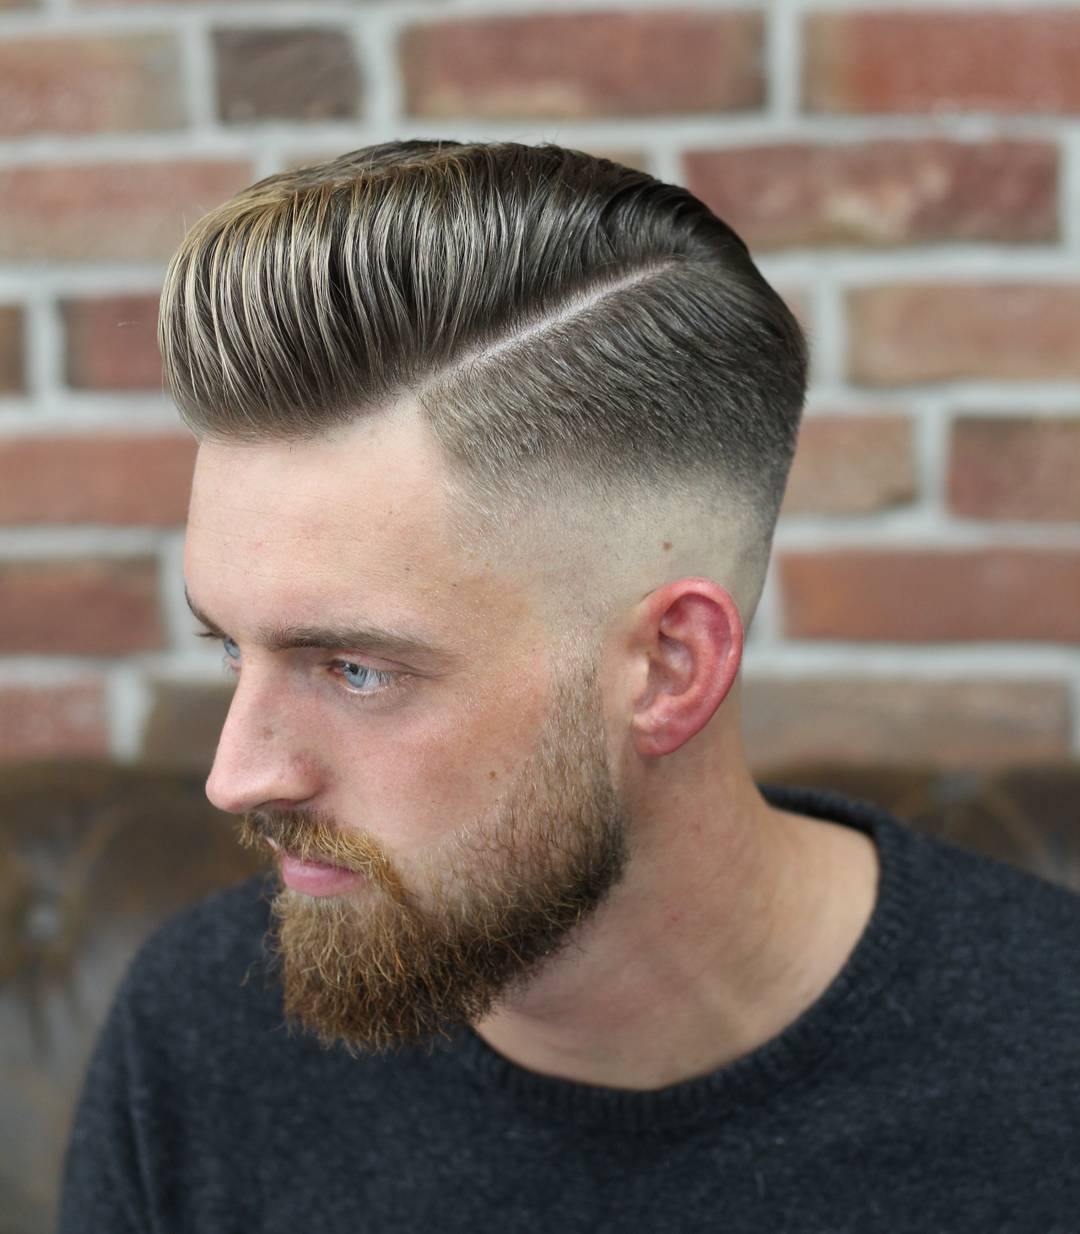 Hipster men hairstyles 25 hairstyles for hipster men look - Barber_djirlauw Cool Pompadour Hairstyle Mens Haircut